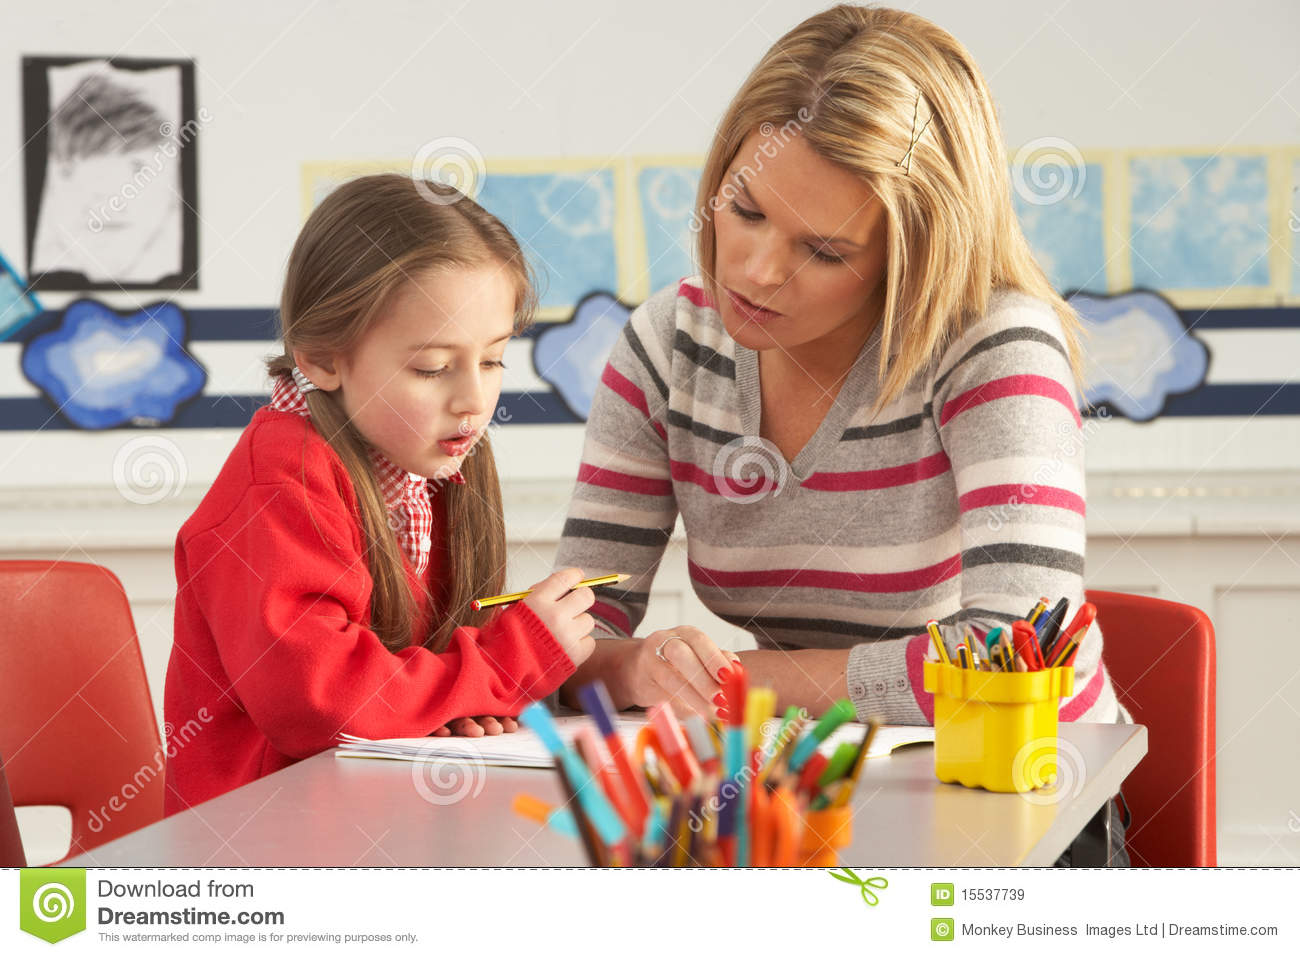 Female Primary School Pupil And Teacher Working